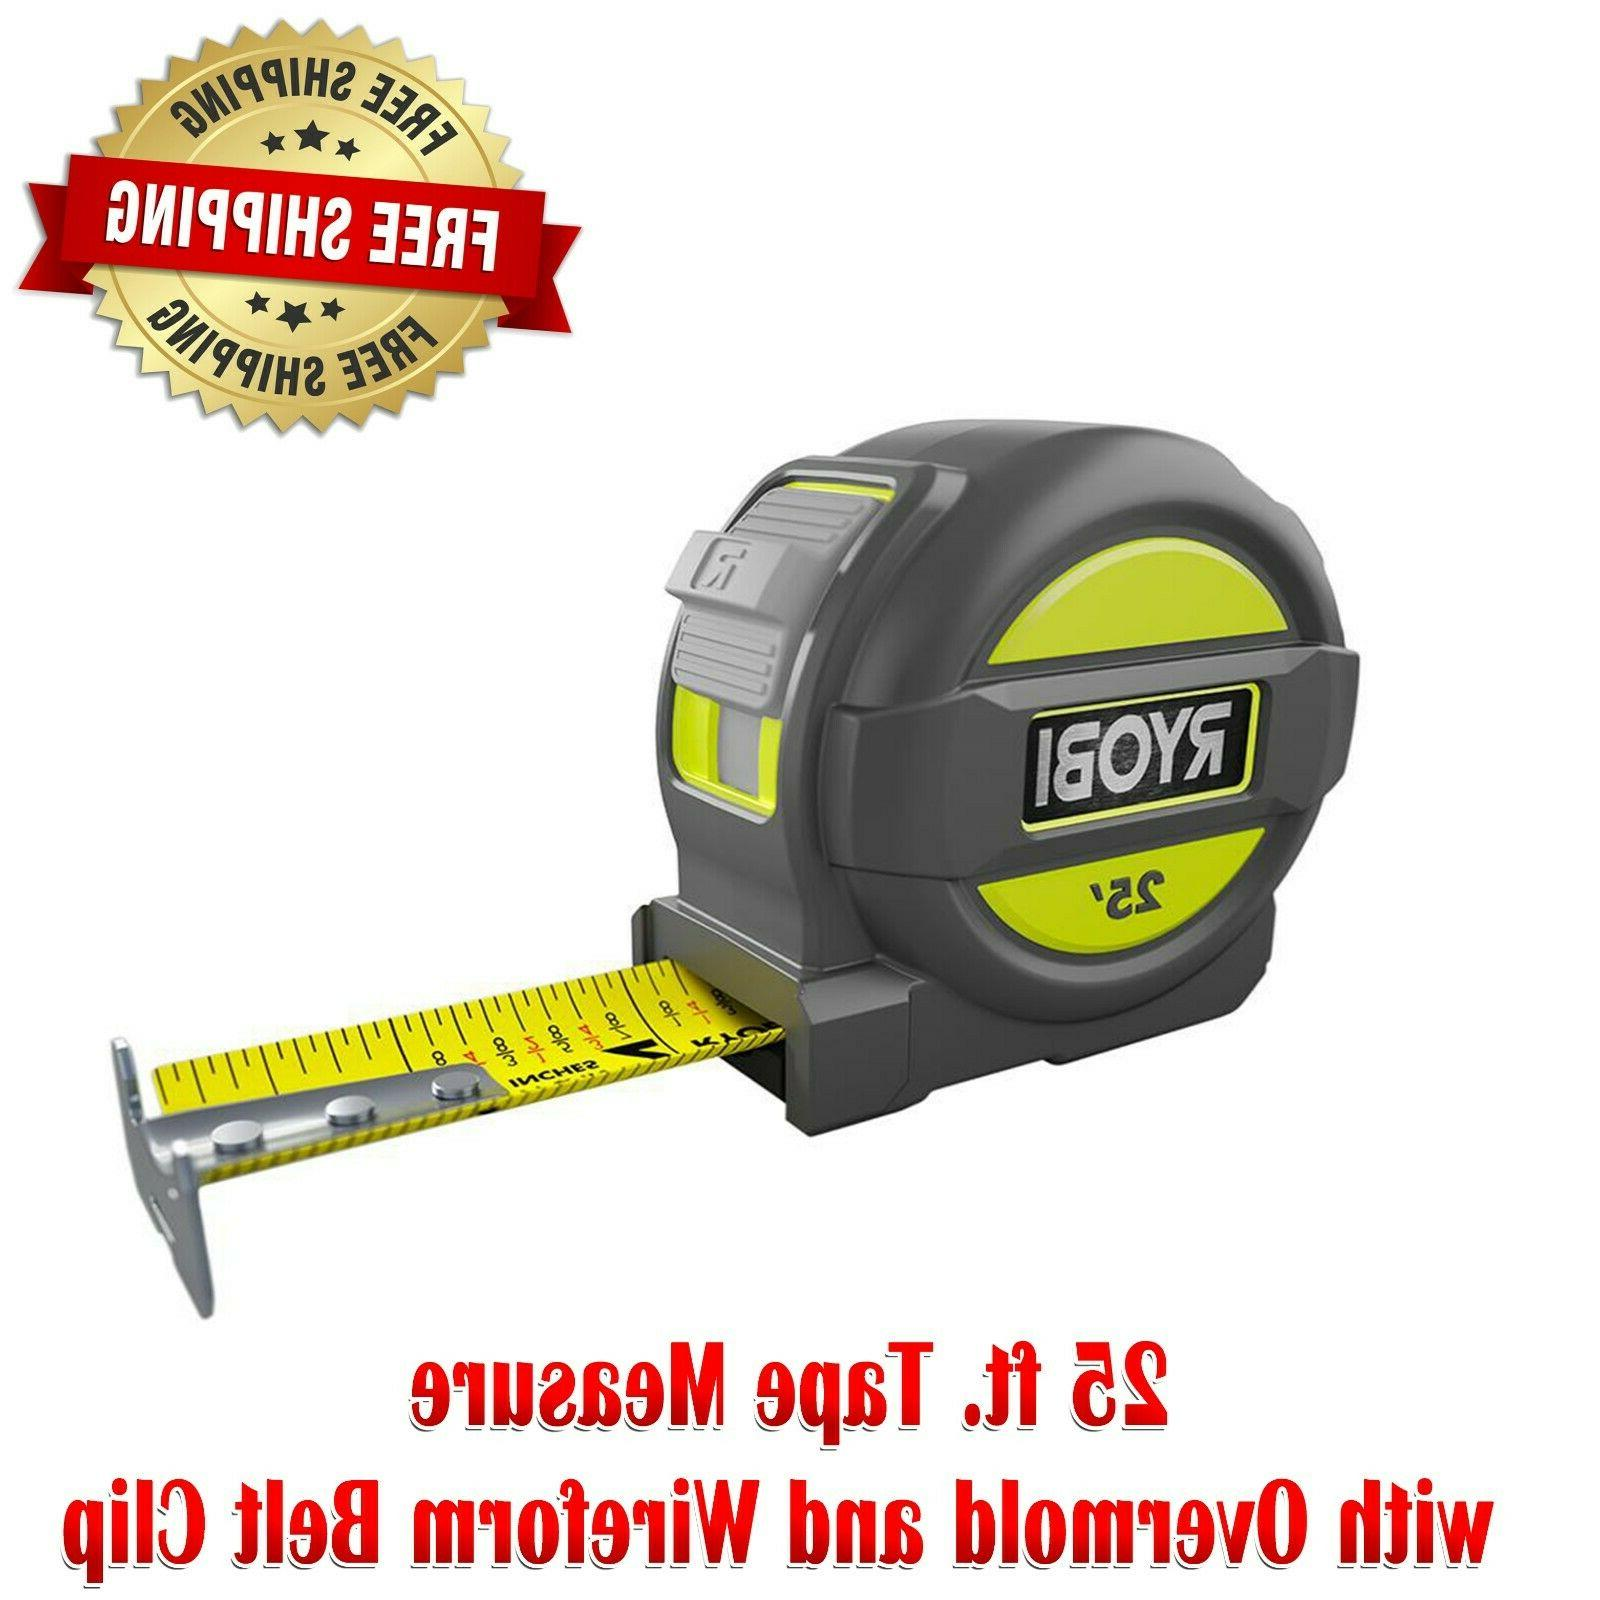 25 foot tape measure with overmold